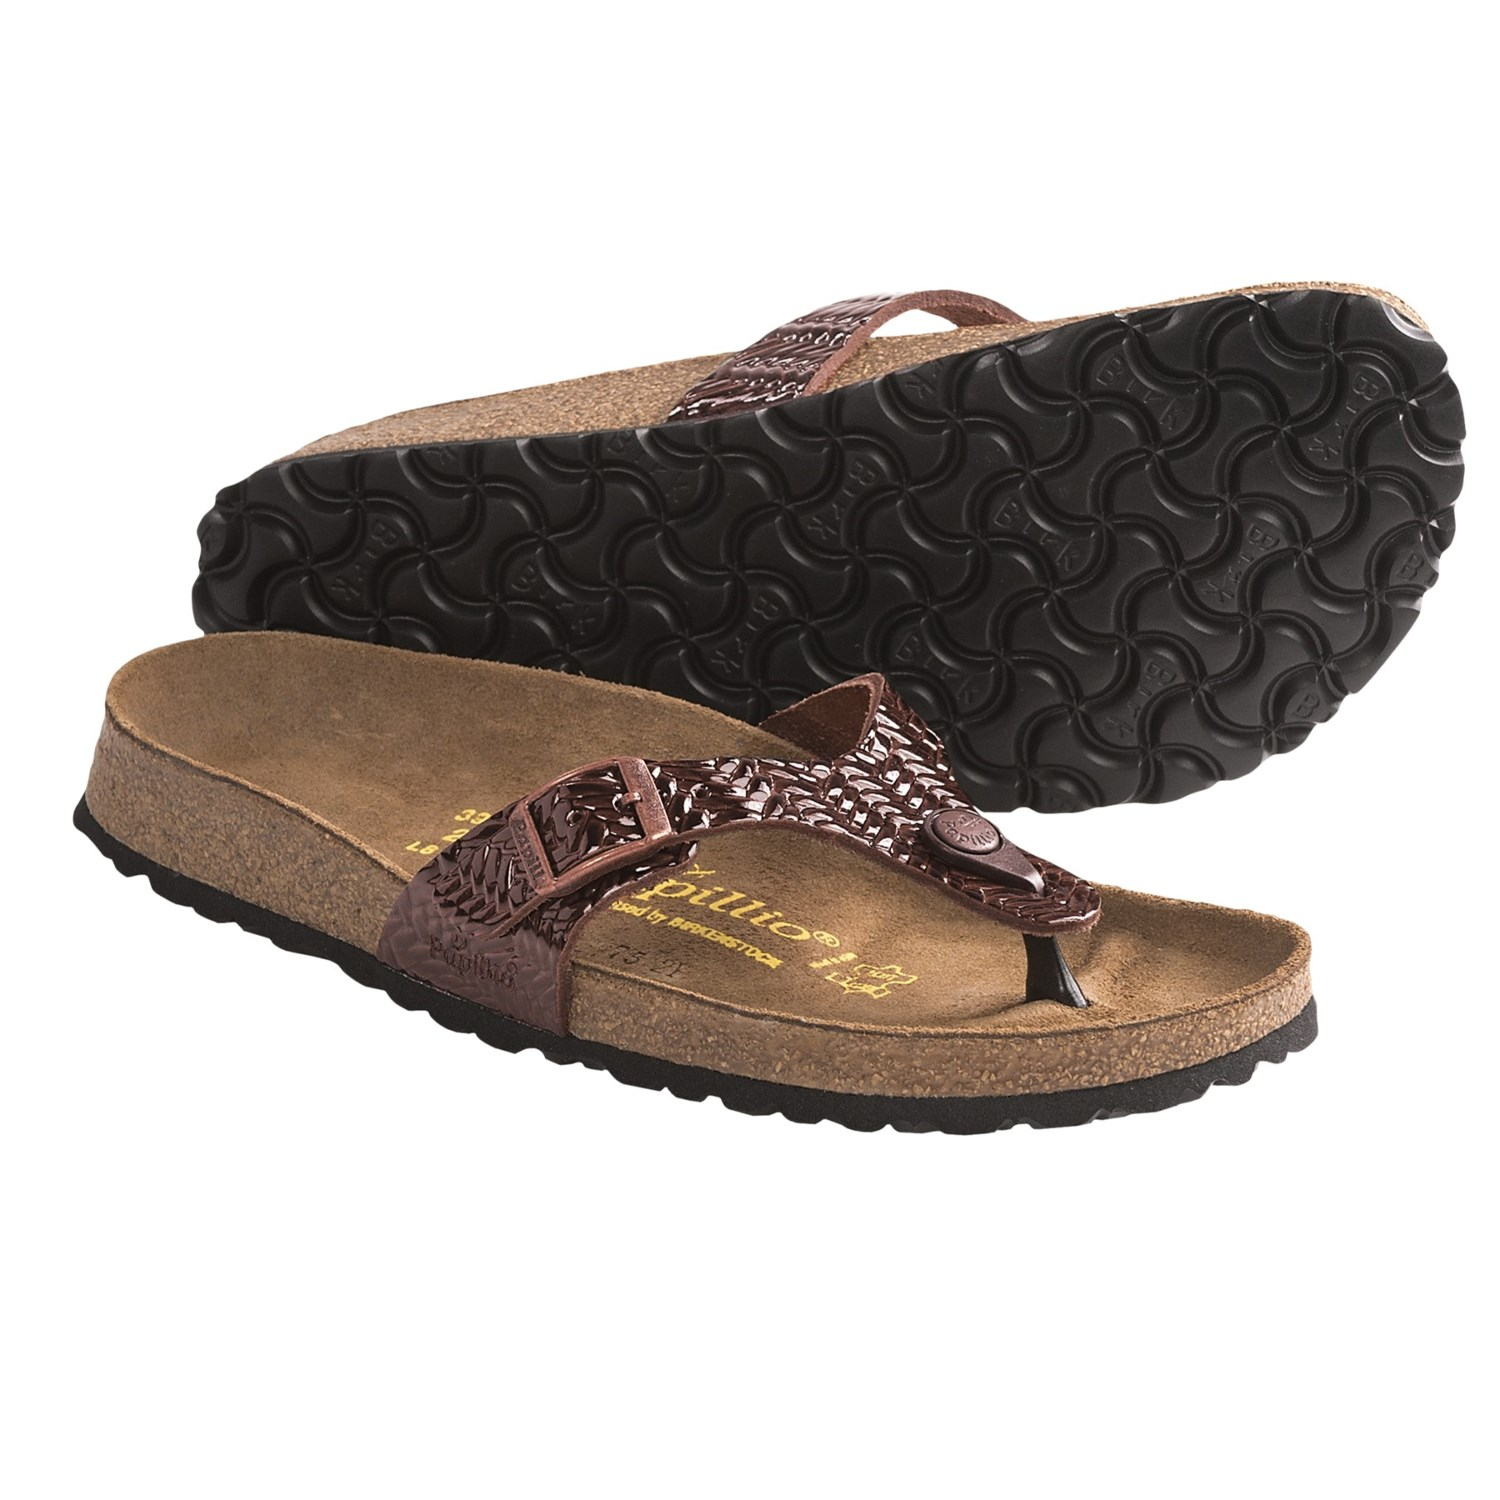 Birkenstock Papillio Sandals for Women